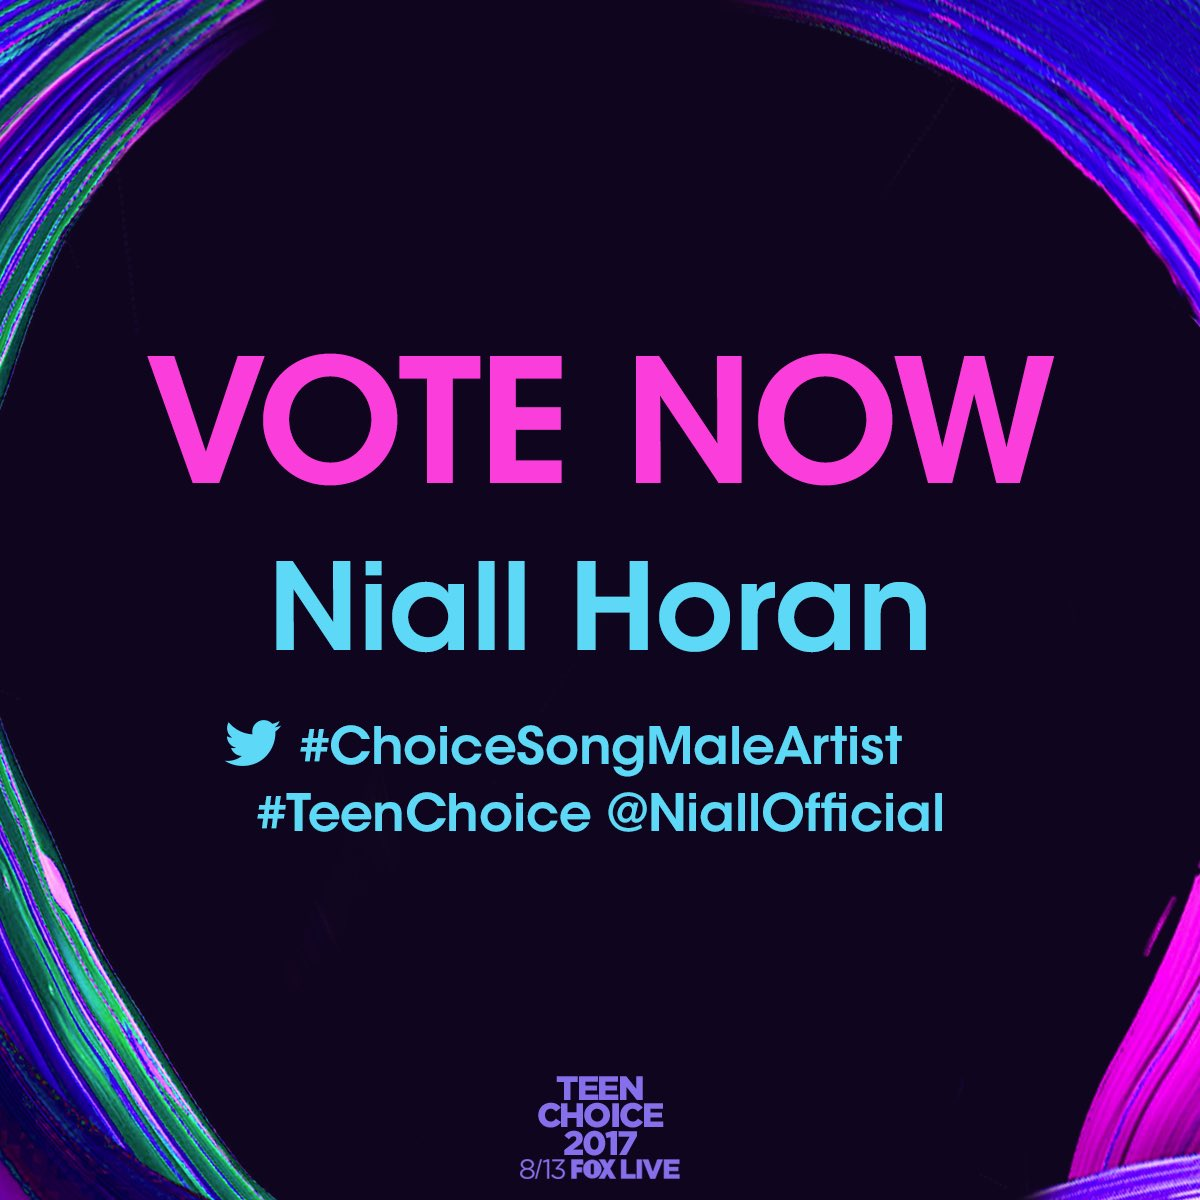 #ChoiceSongMaleArtist #Teenchoice https://t.co/DQgjkPepMz